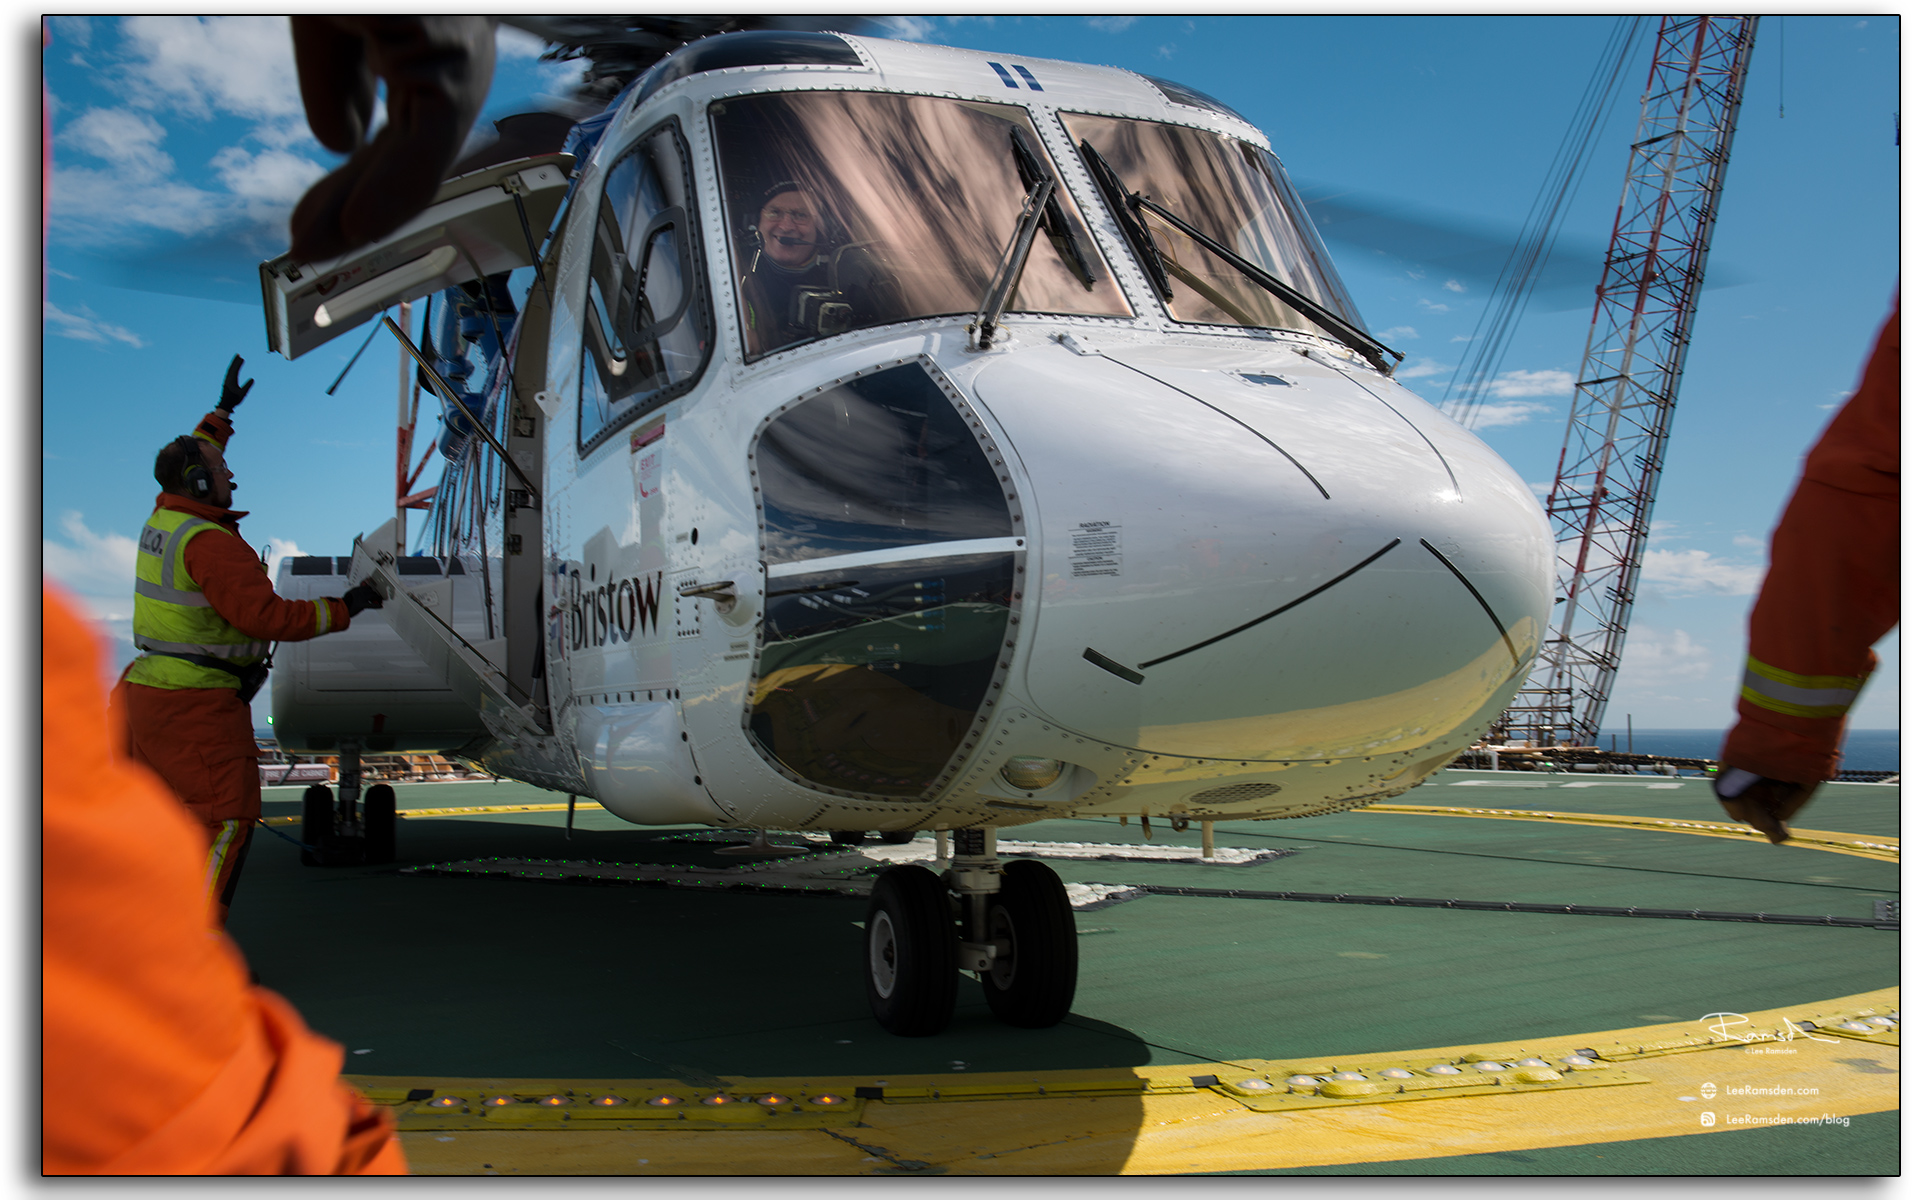 Sikorsky S92, landed on North Sea oil and gas, installation.